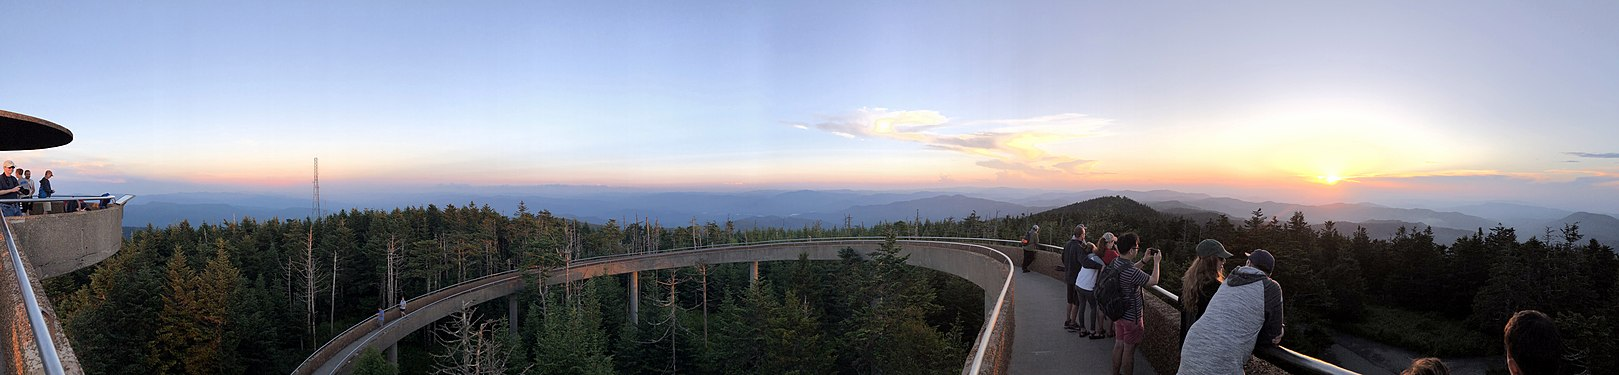 Clingmans Dome panorama at sunset - July 2019.jpg